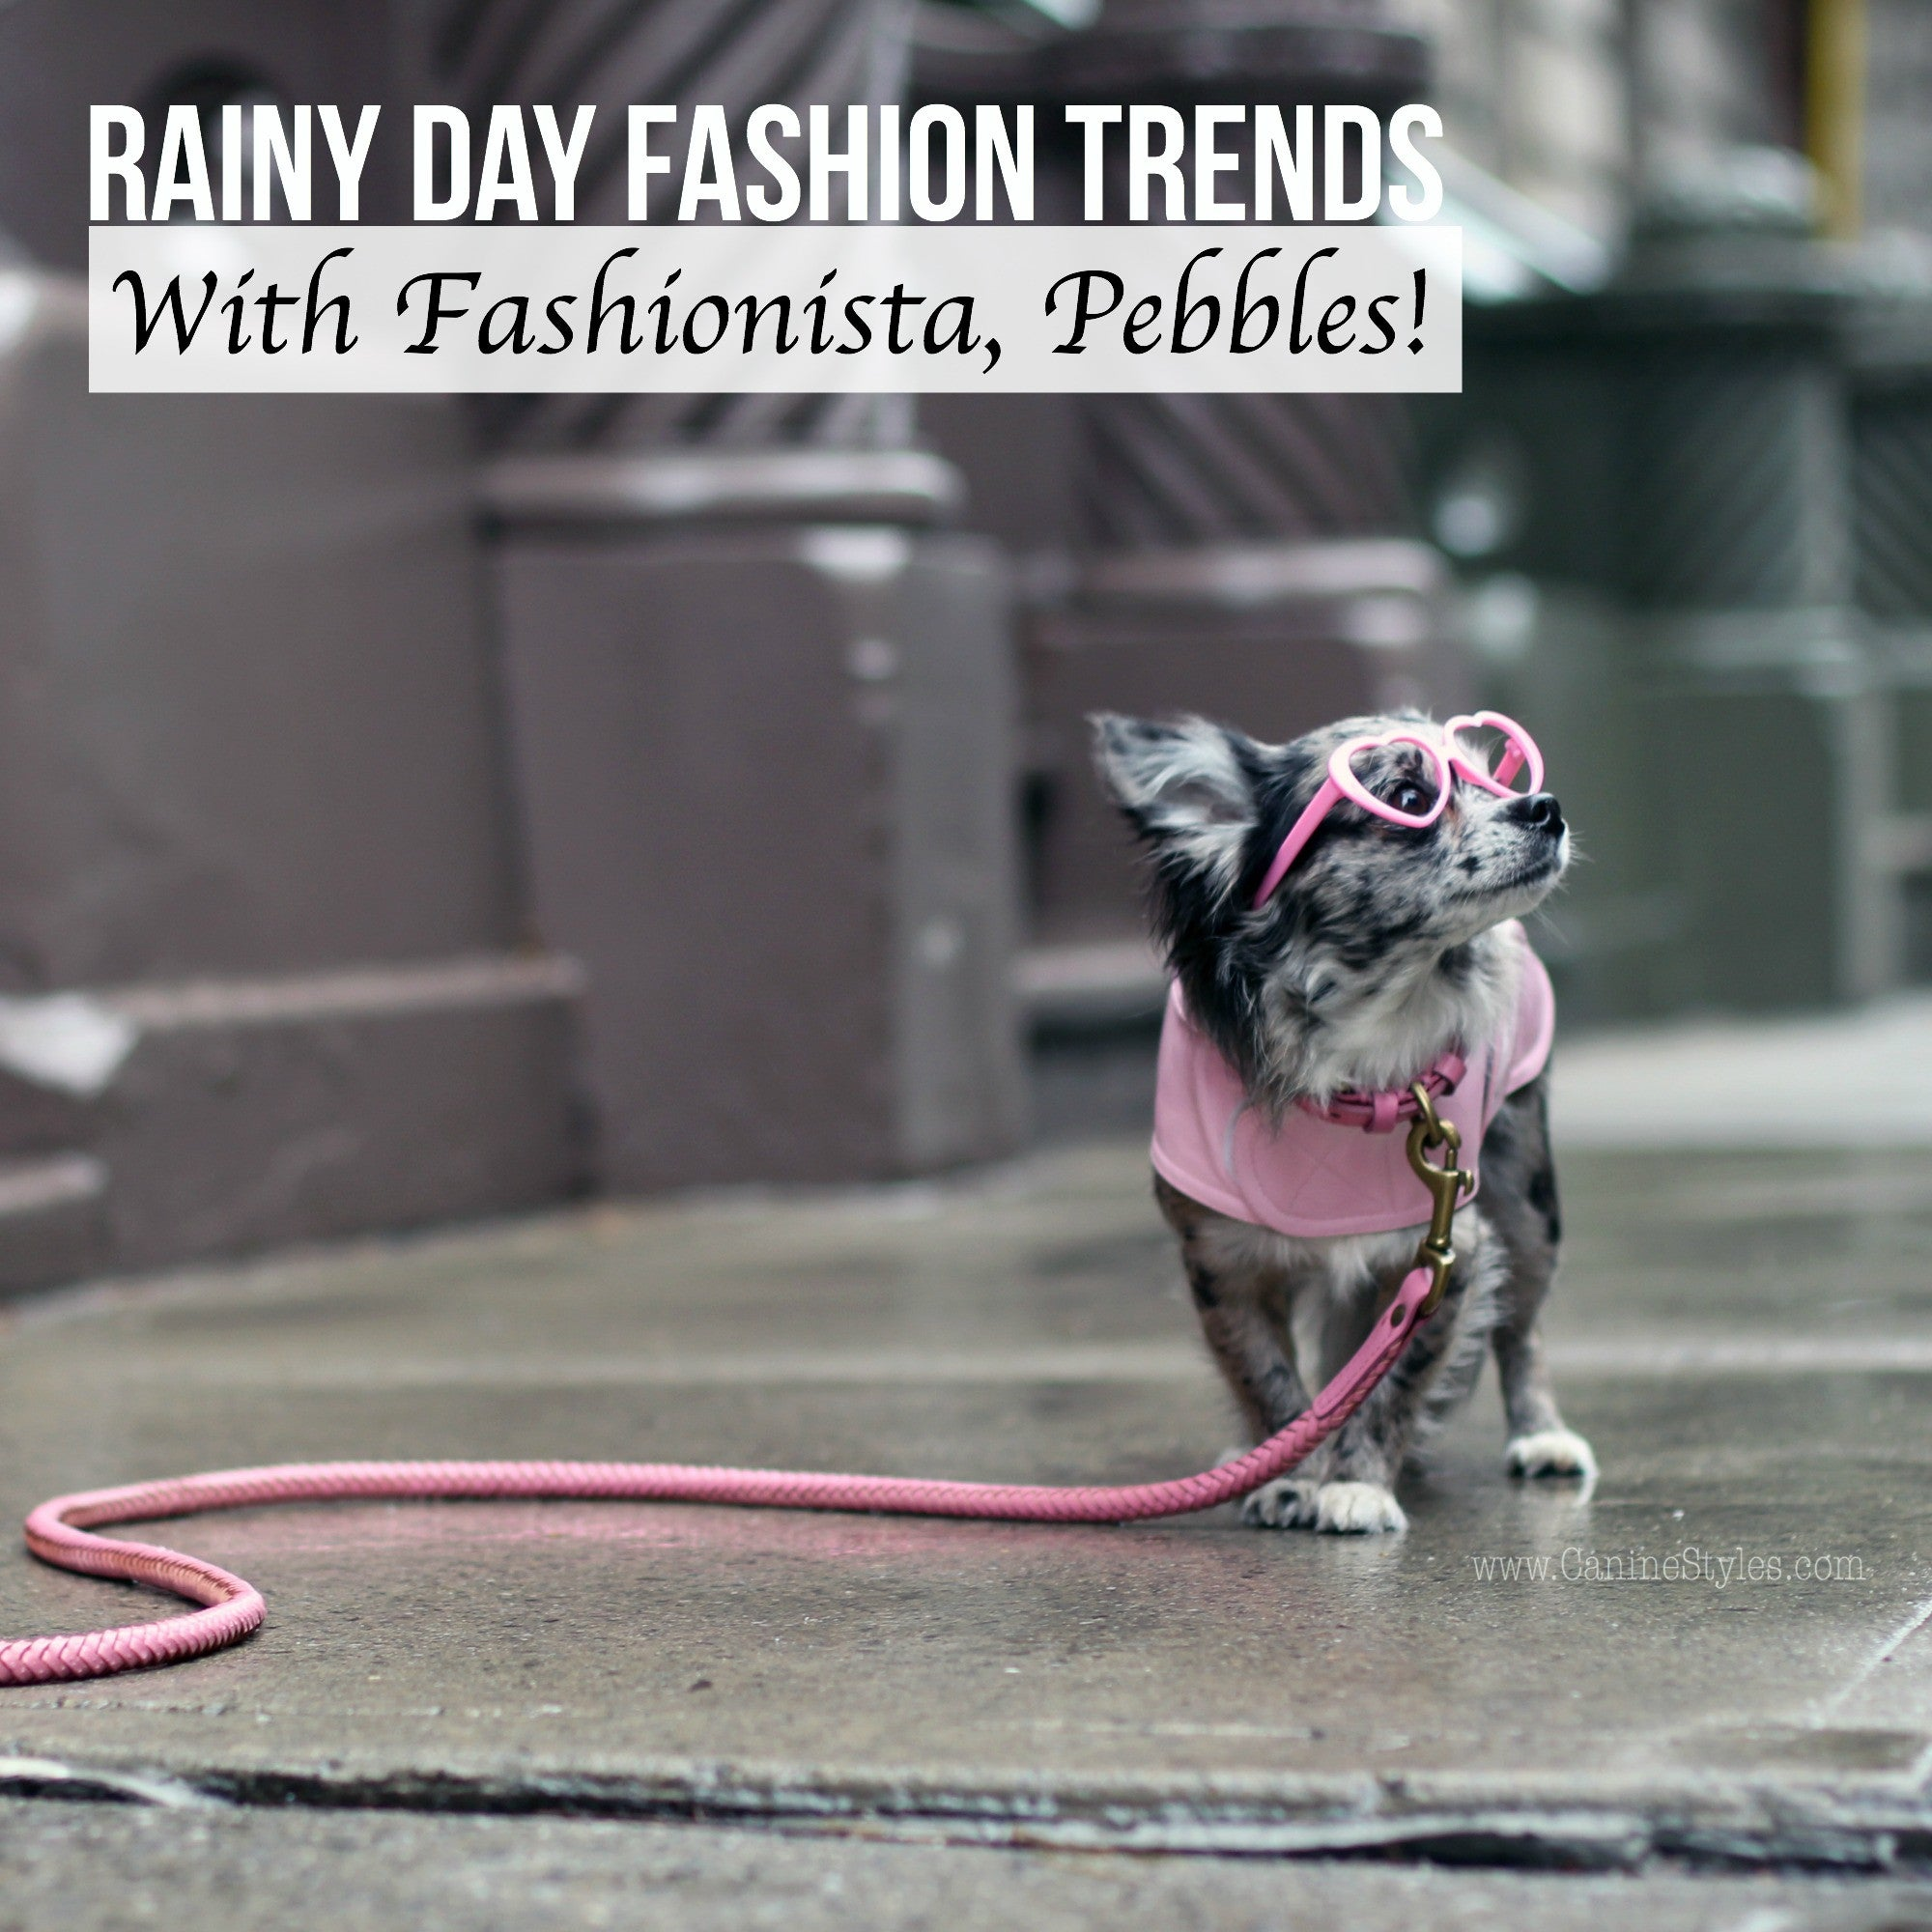 This Cute Ball of Fur Shares Her Rain Day Fashion and Its Gorgeous! Wow!